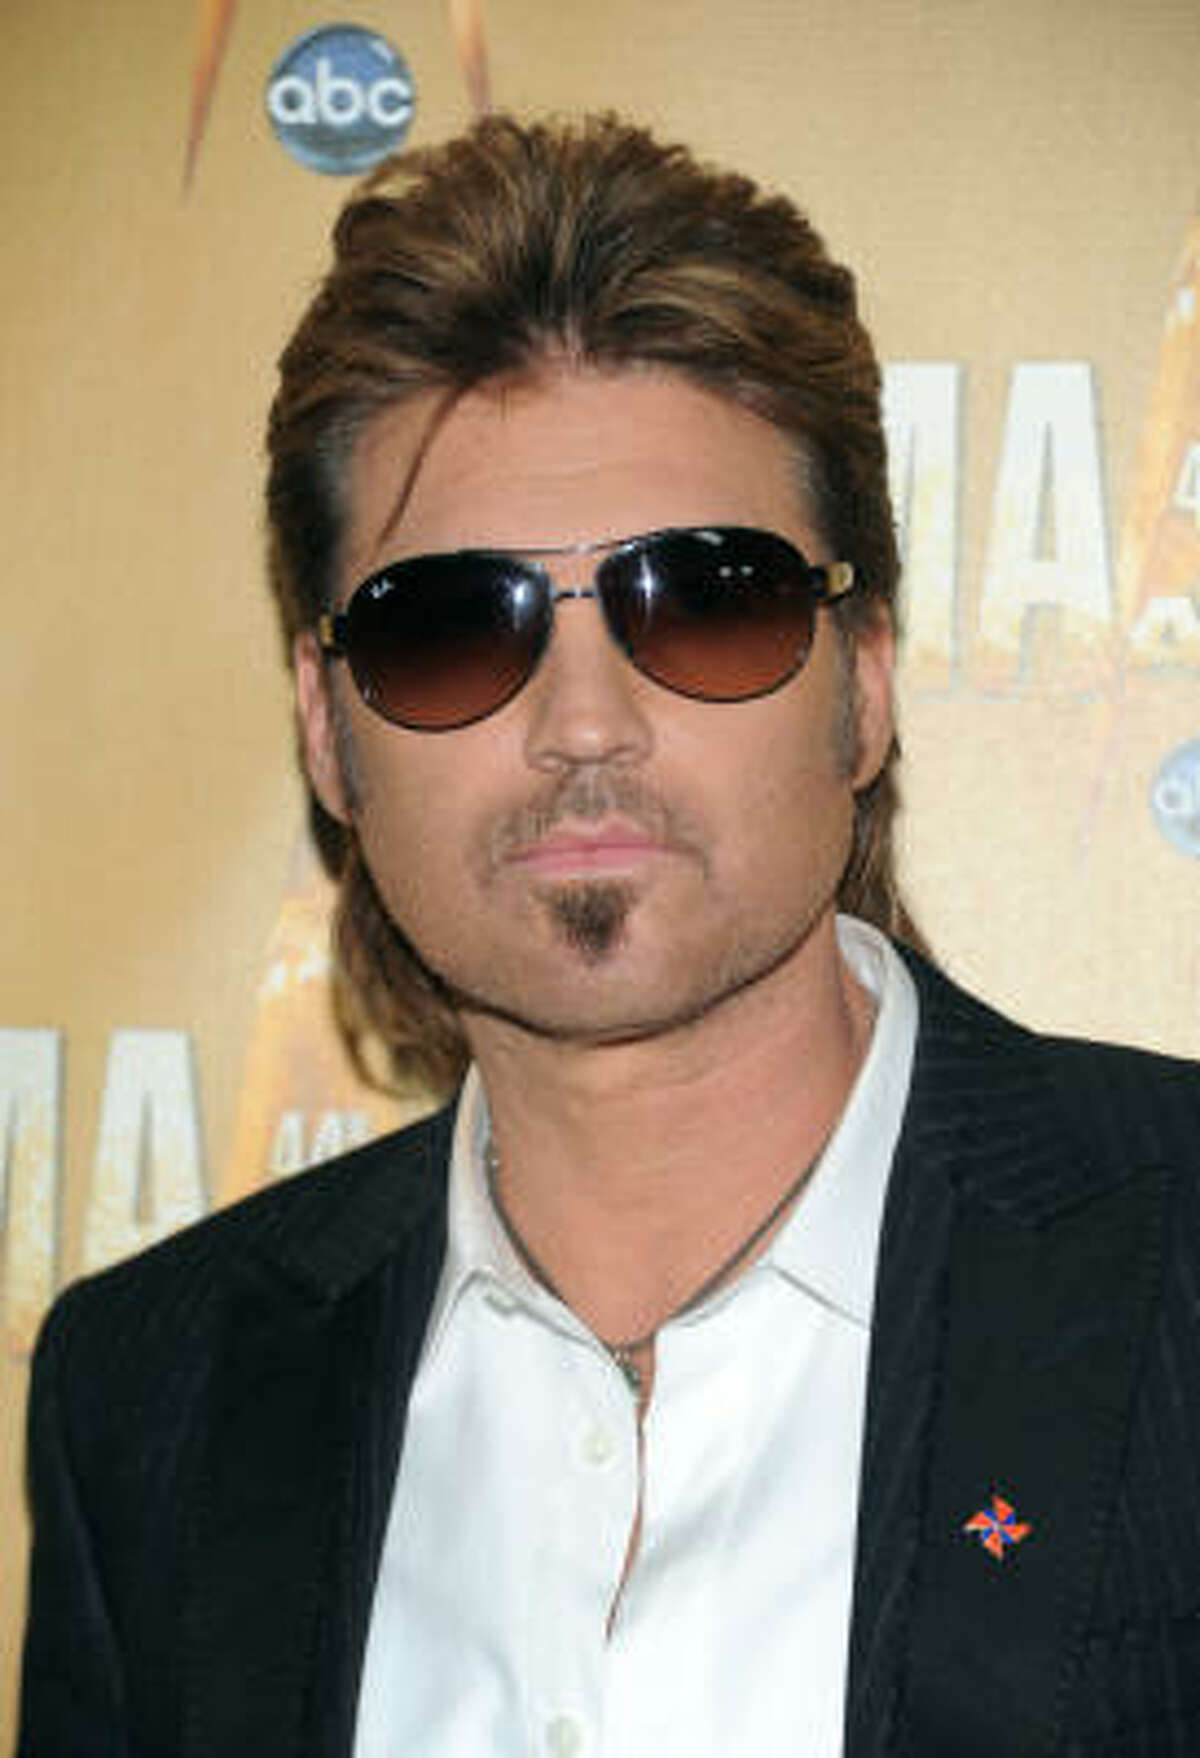 Billy Ray Cyrus Turns 50 on August 25.